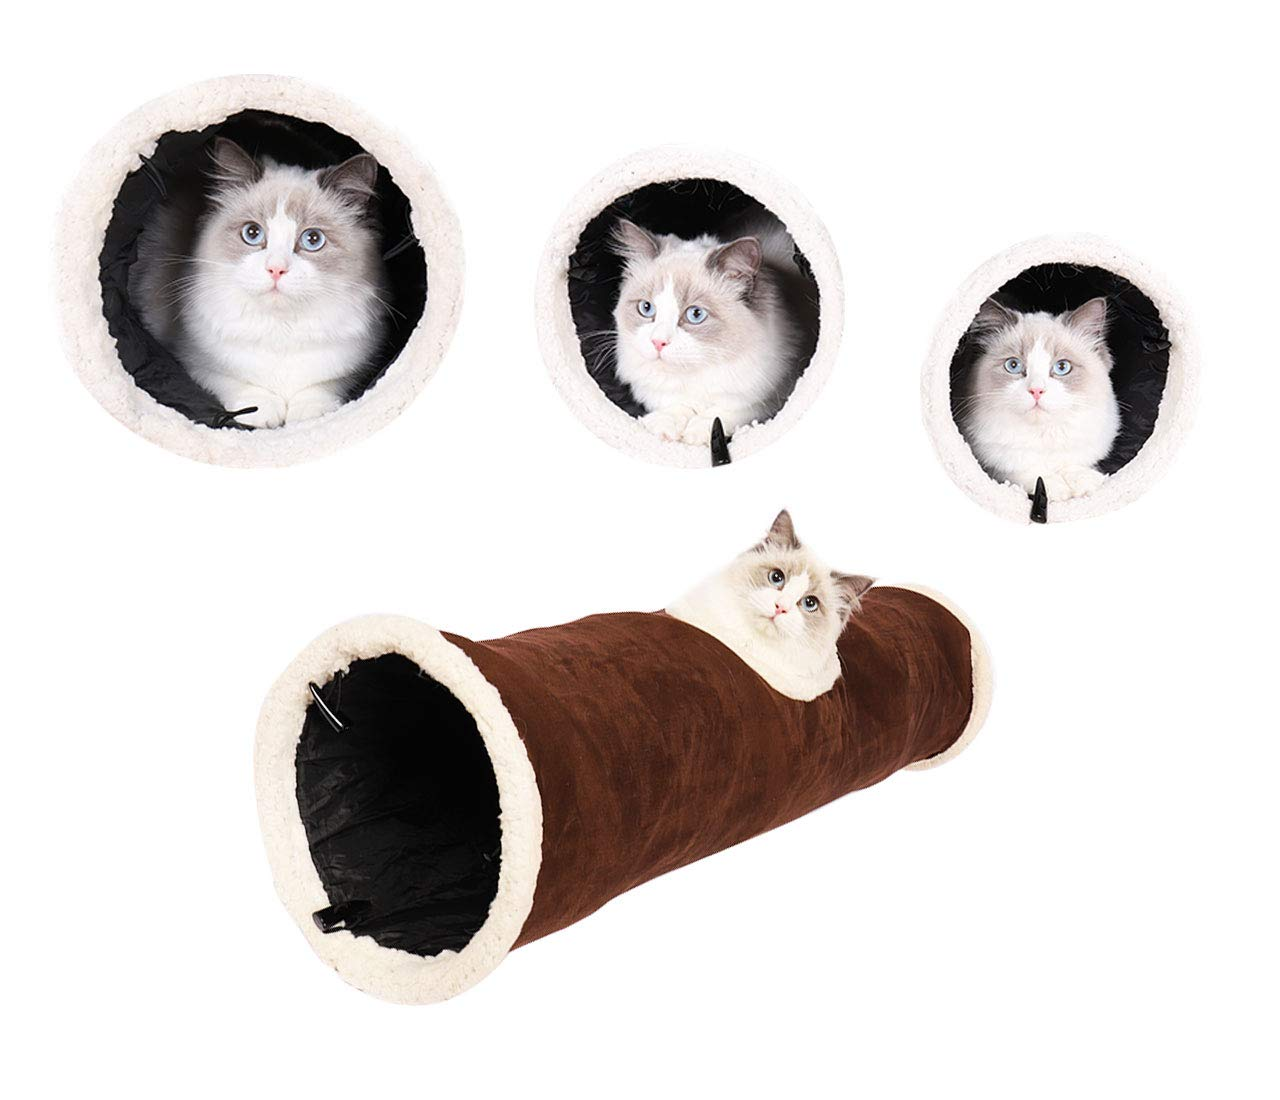 PetLike Cat Tunnel Pop-up Collapsible Crinkle Paper Pet Tube Interactive Play Toy with Peekaboo Holes